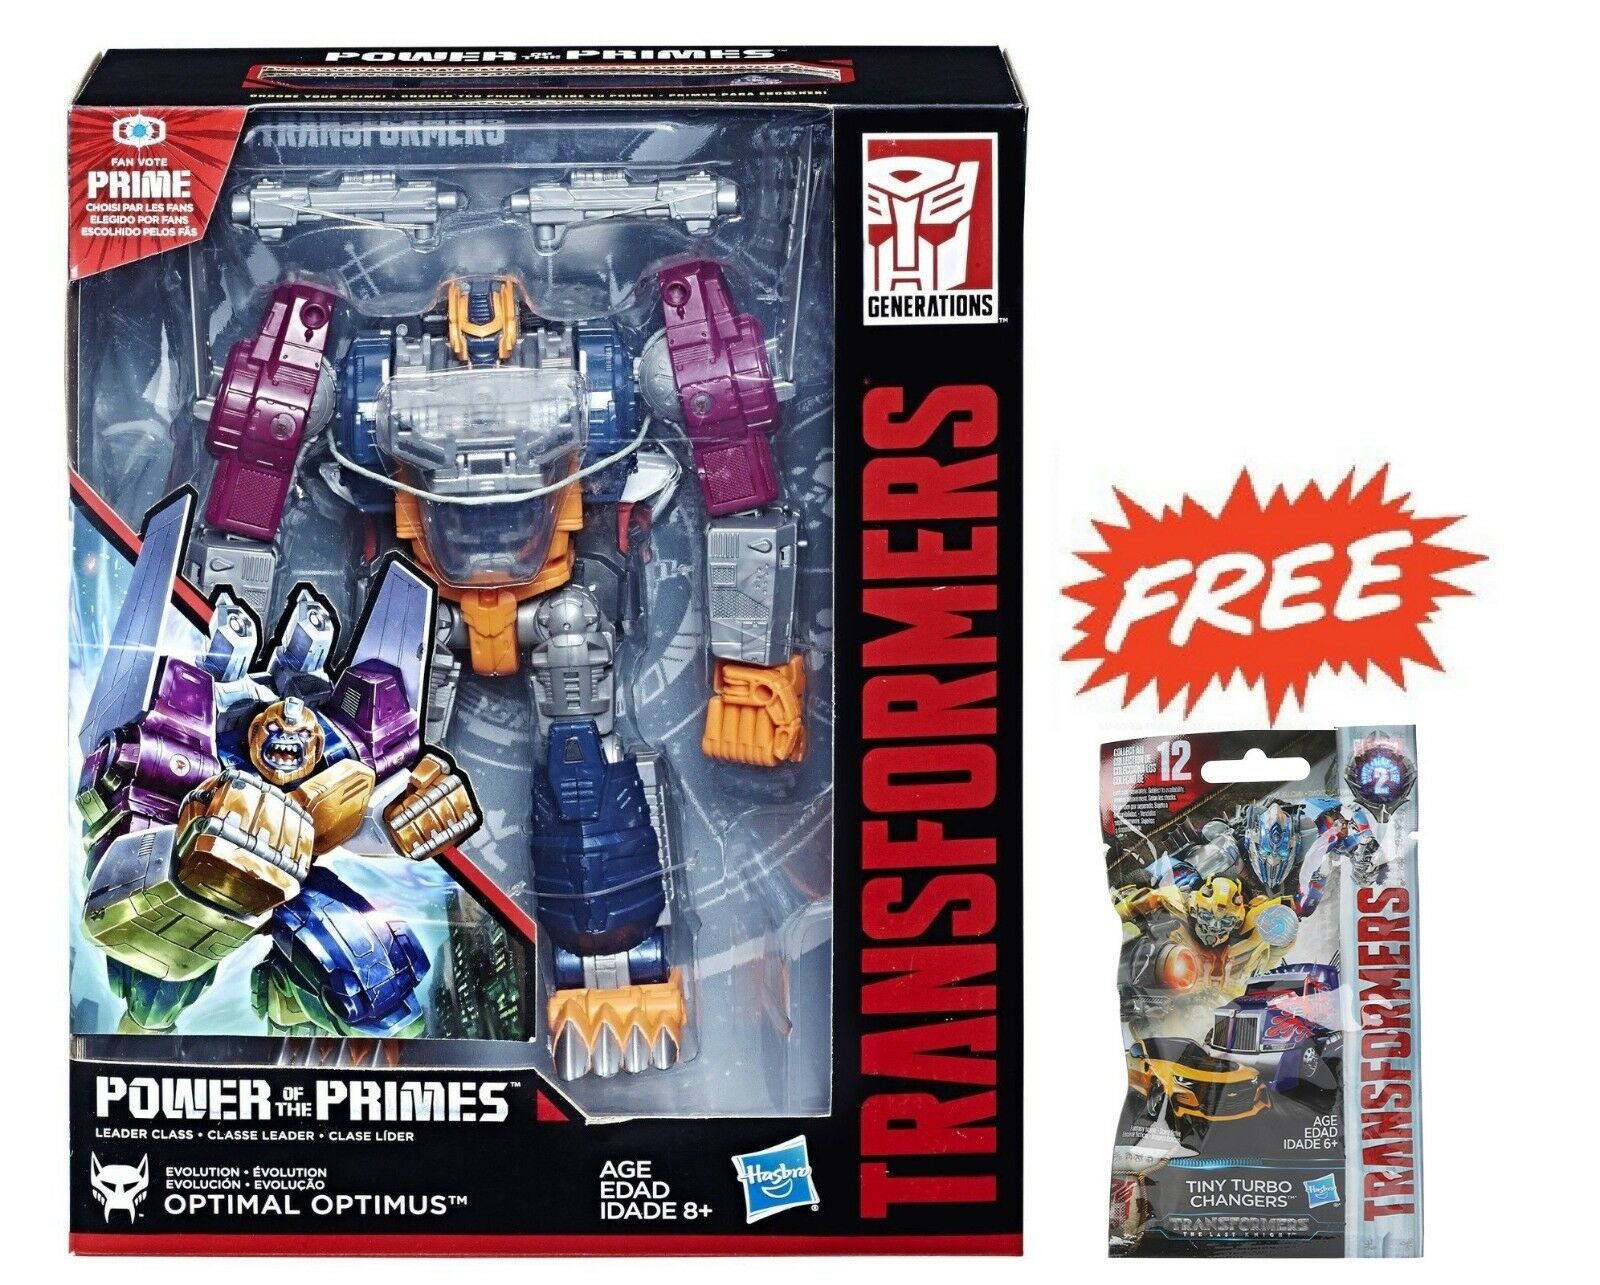 TRANSFORMERS POWER OF THE PRIMES LEADER EVOLUTION OPTIMAL PRIME + TINY TURBO 02